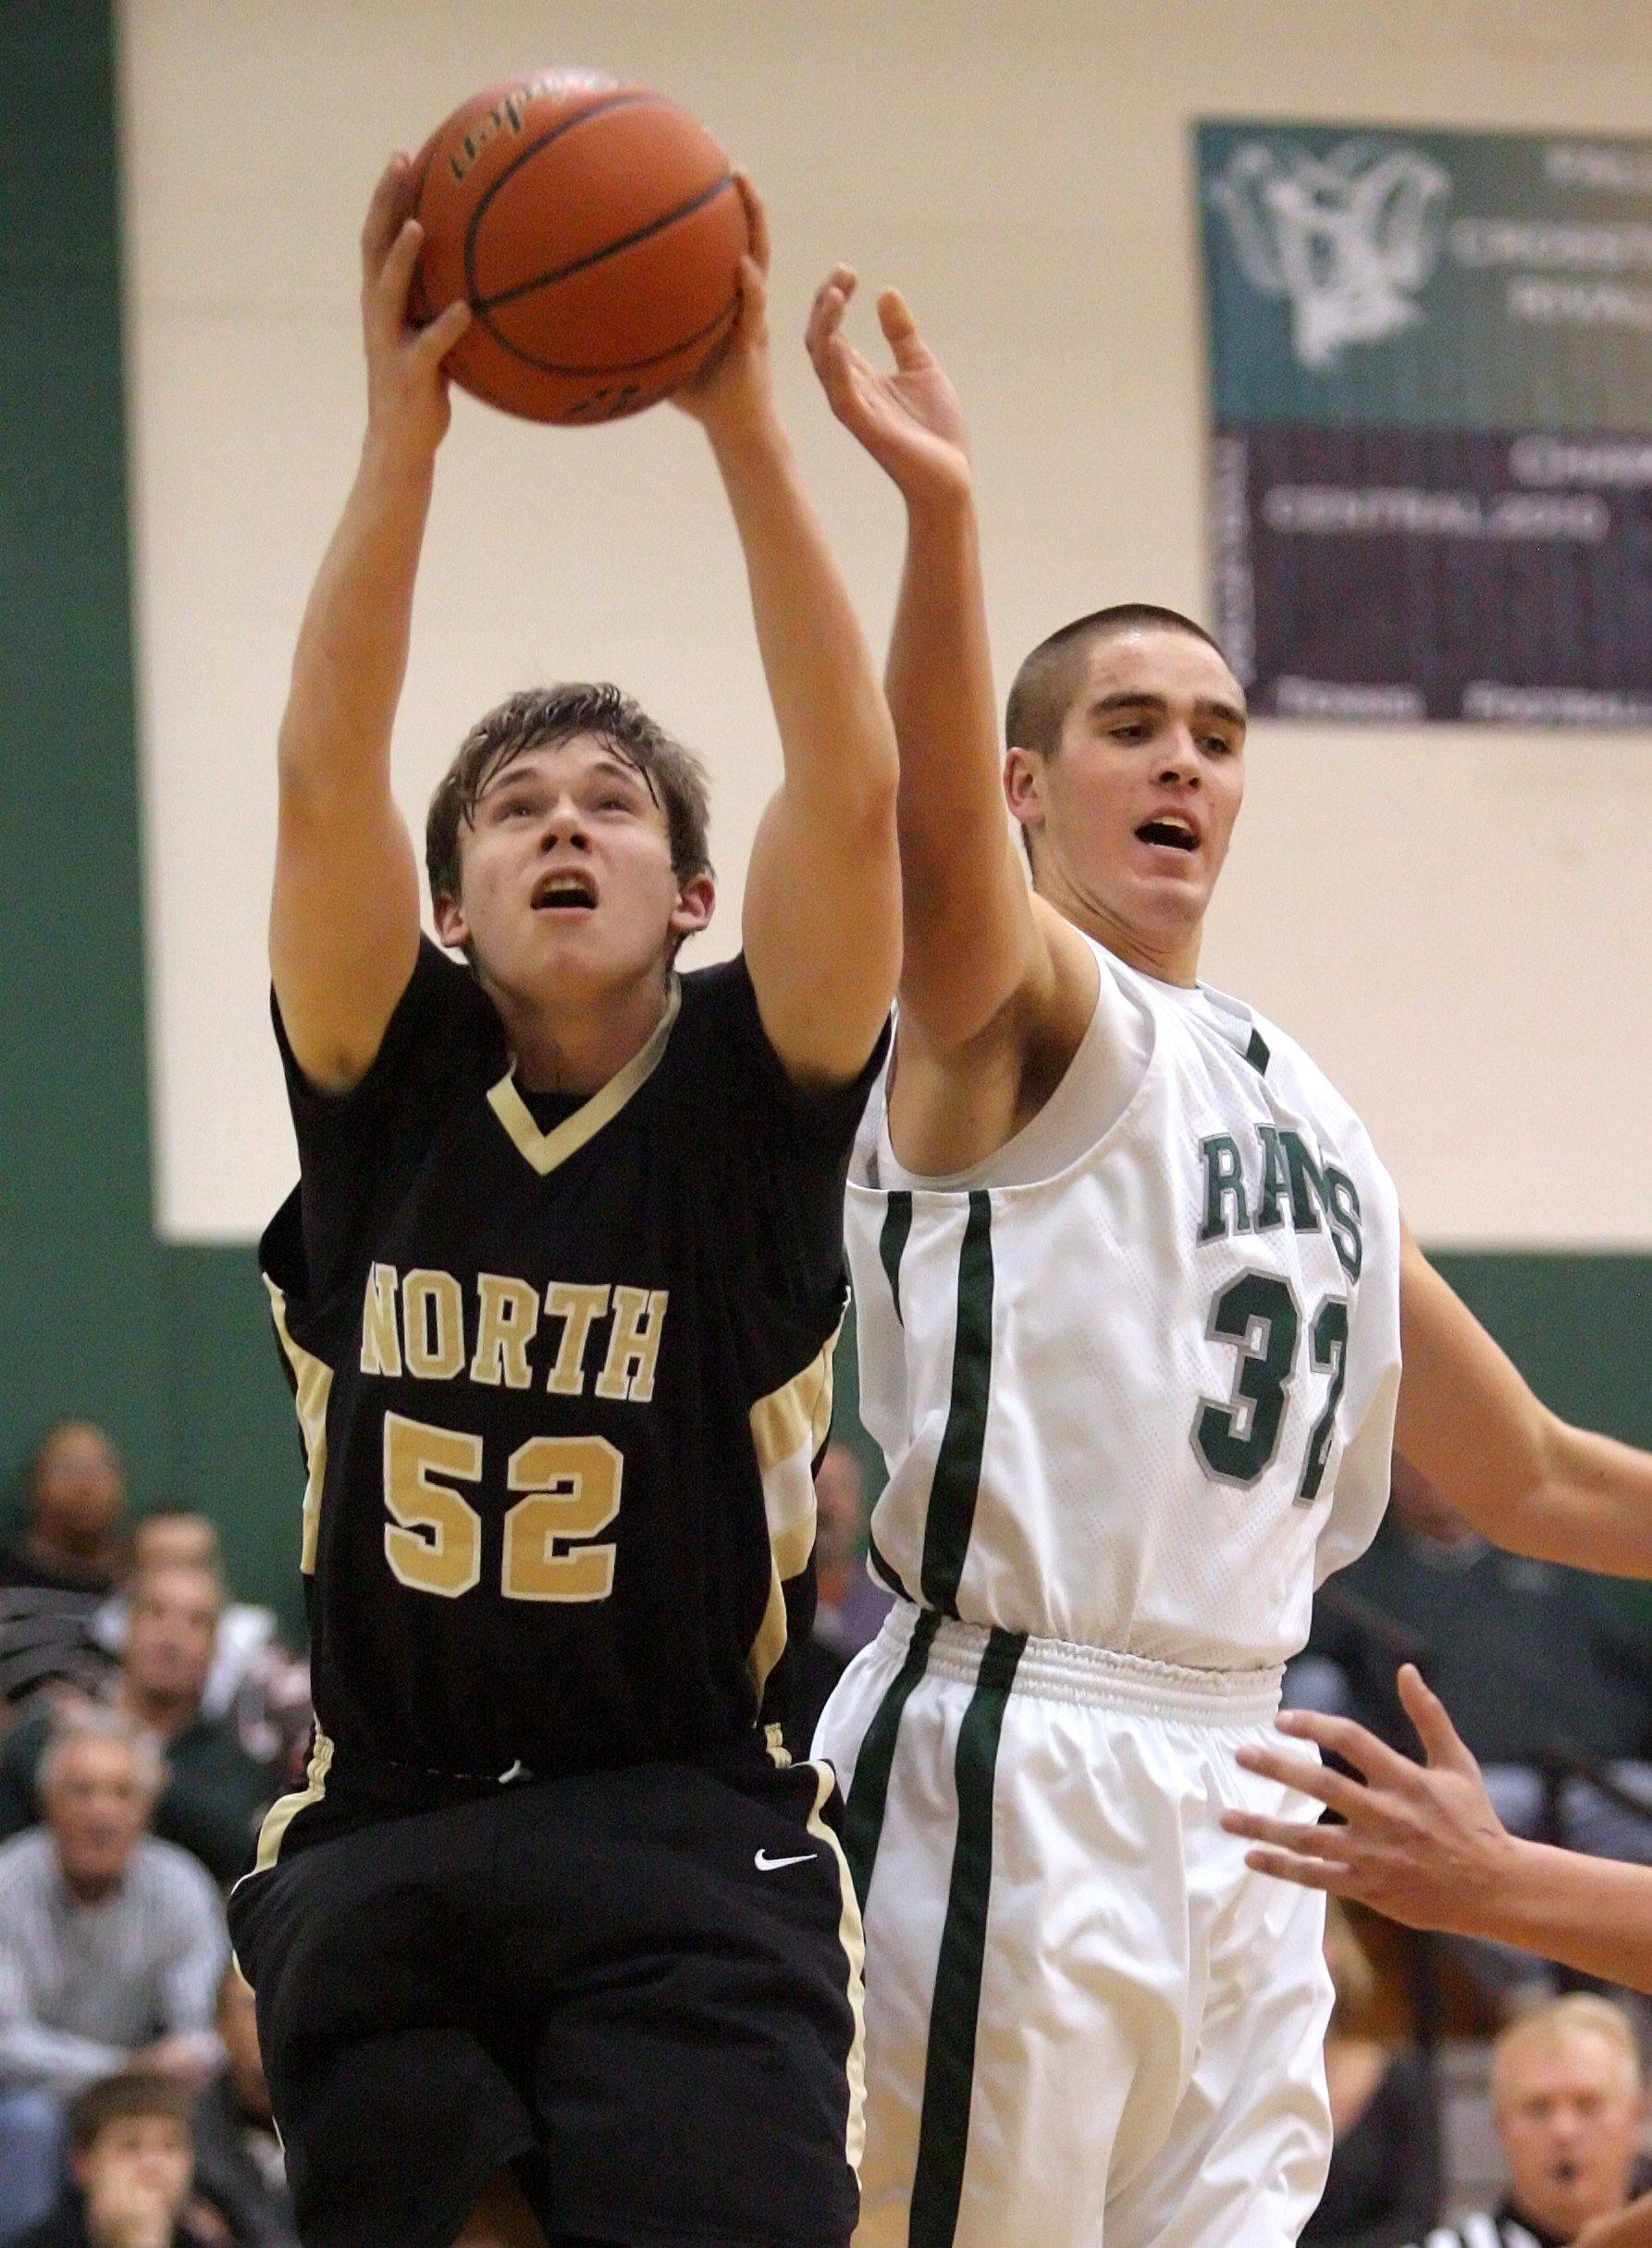 Grayslake North's David Sparks, left, and Grayslake Central's Casey Boyle fight for a rebound .